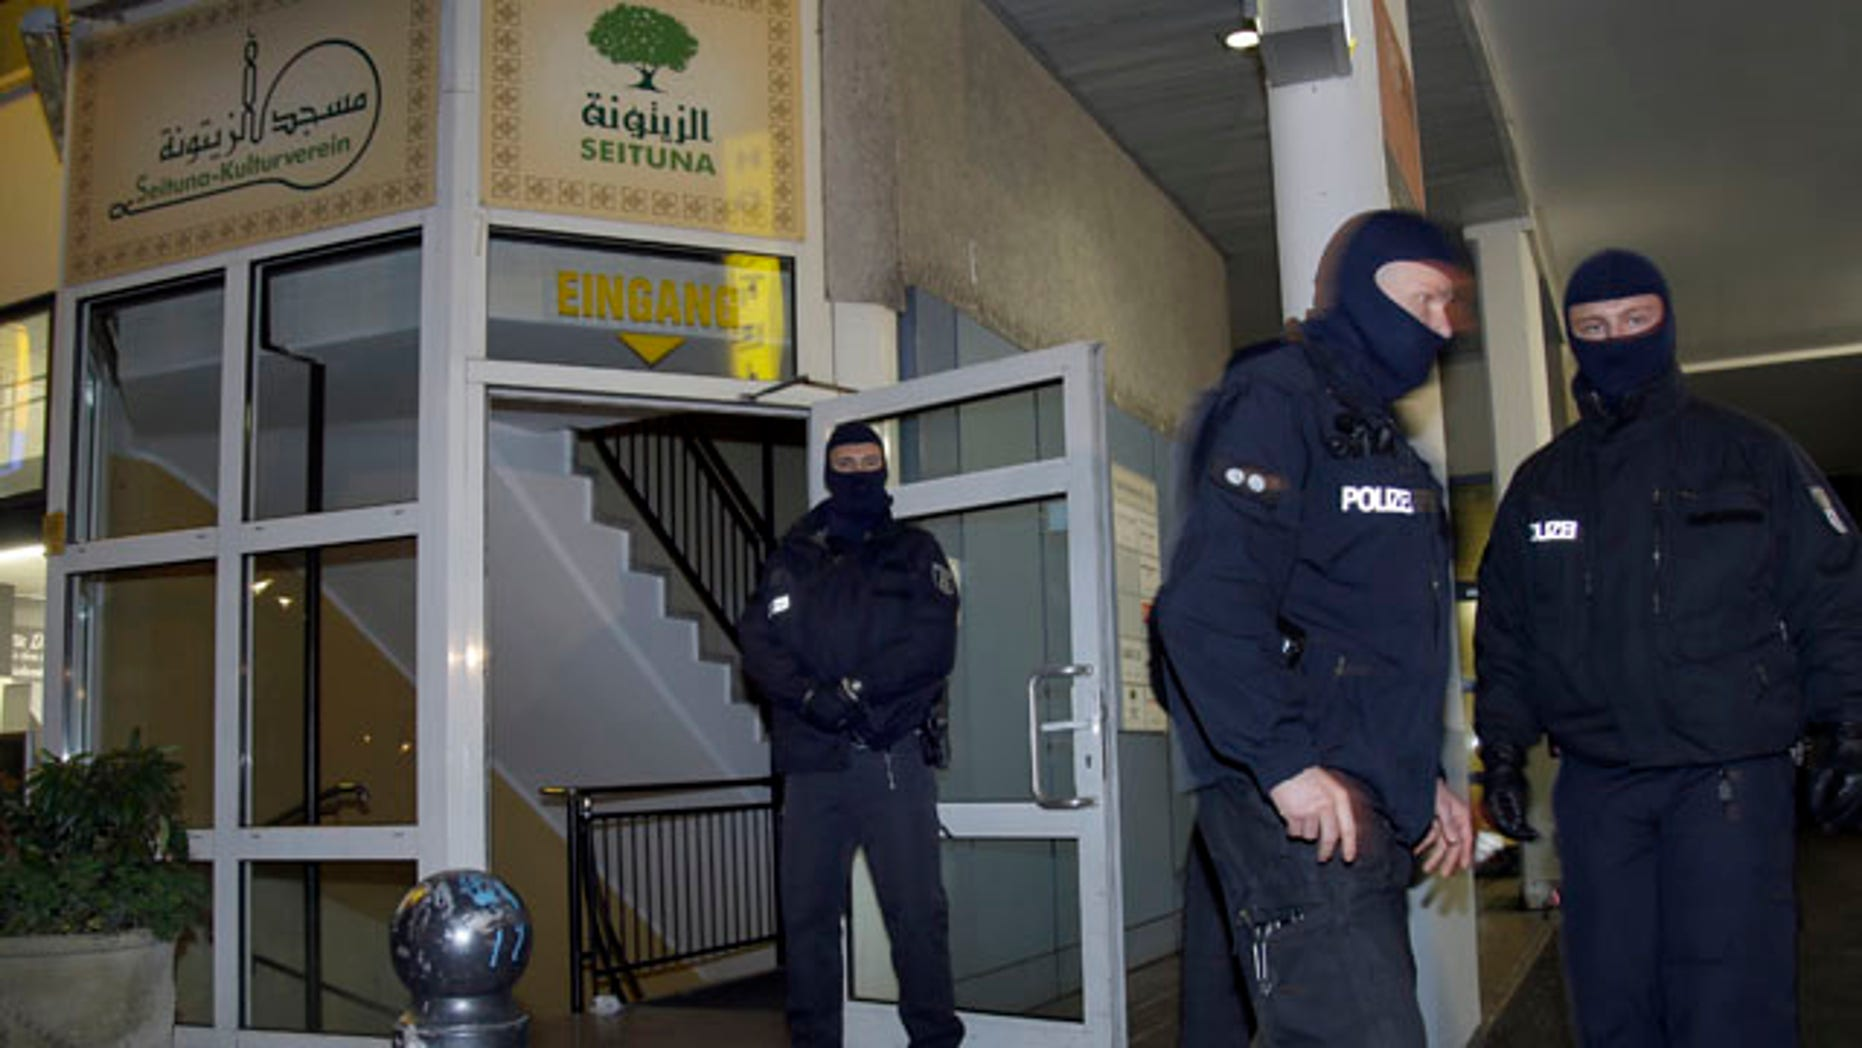 Nov. 26, 2015: Masked police officers guard the 'Seituna' cultural center in Berlin, Germany. Police raided the mosque after the arrest of two people suspected of belonging to an Islamist extremist group. (AP Photo/Michael Sohn)